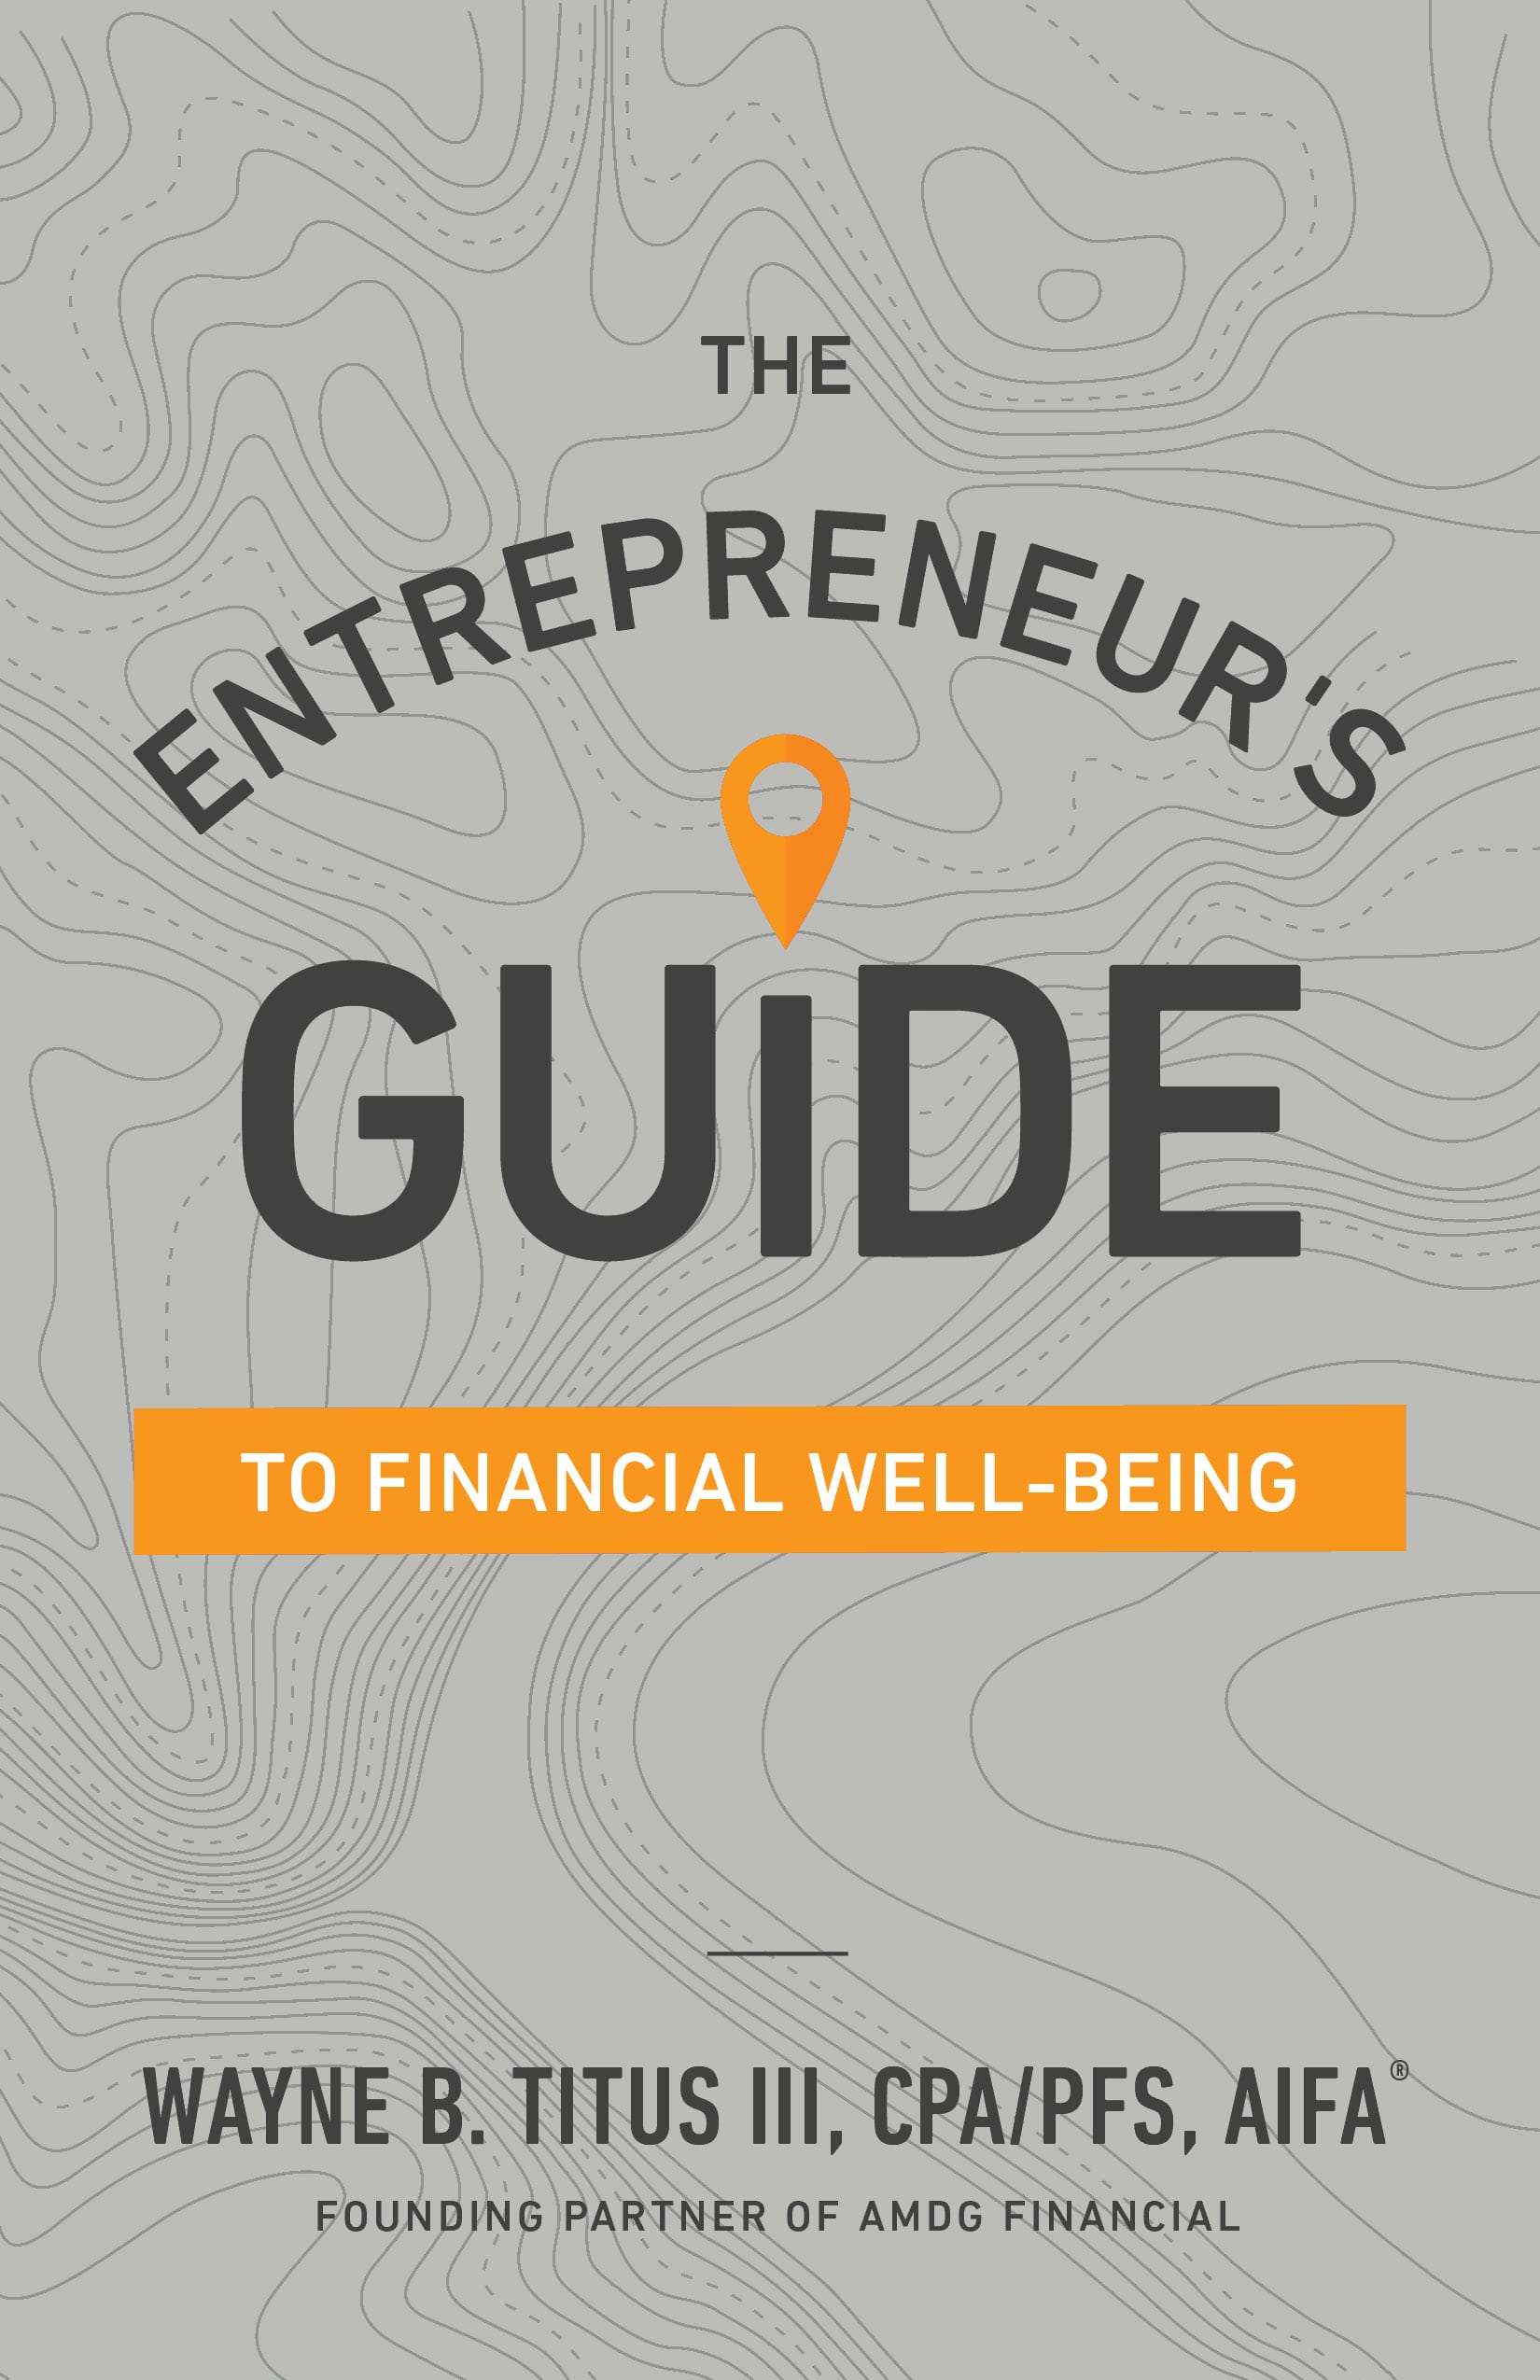 StrategyDriven Managing Your Finances Article | Financial Adviser | Entrepreneurship | Just for Entrepreneurs: How to Choose the Right Financial Adviser